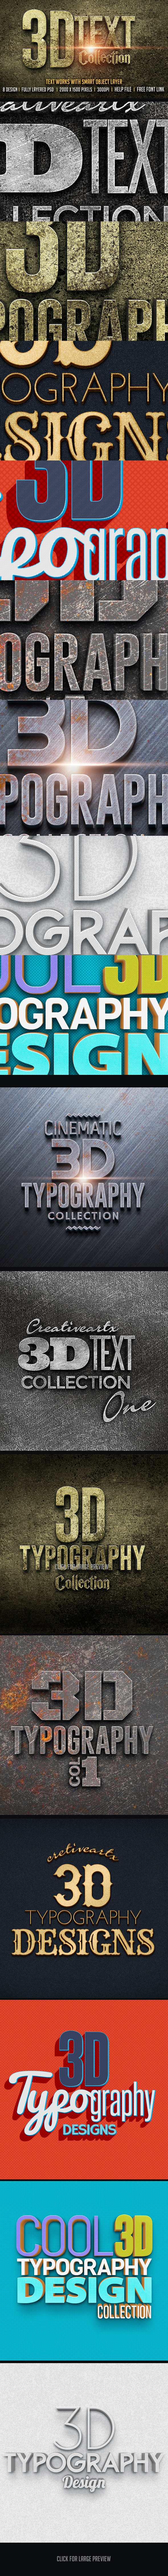 3D Text Col 1 - Text Effects Styles